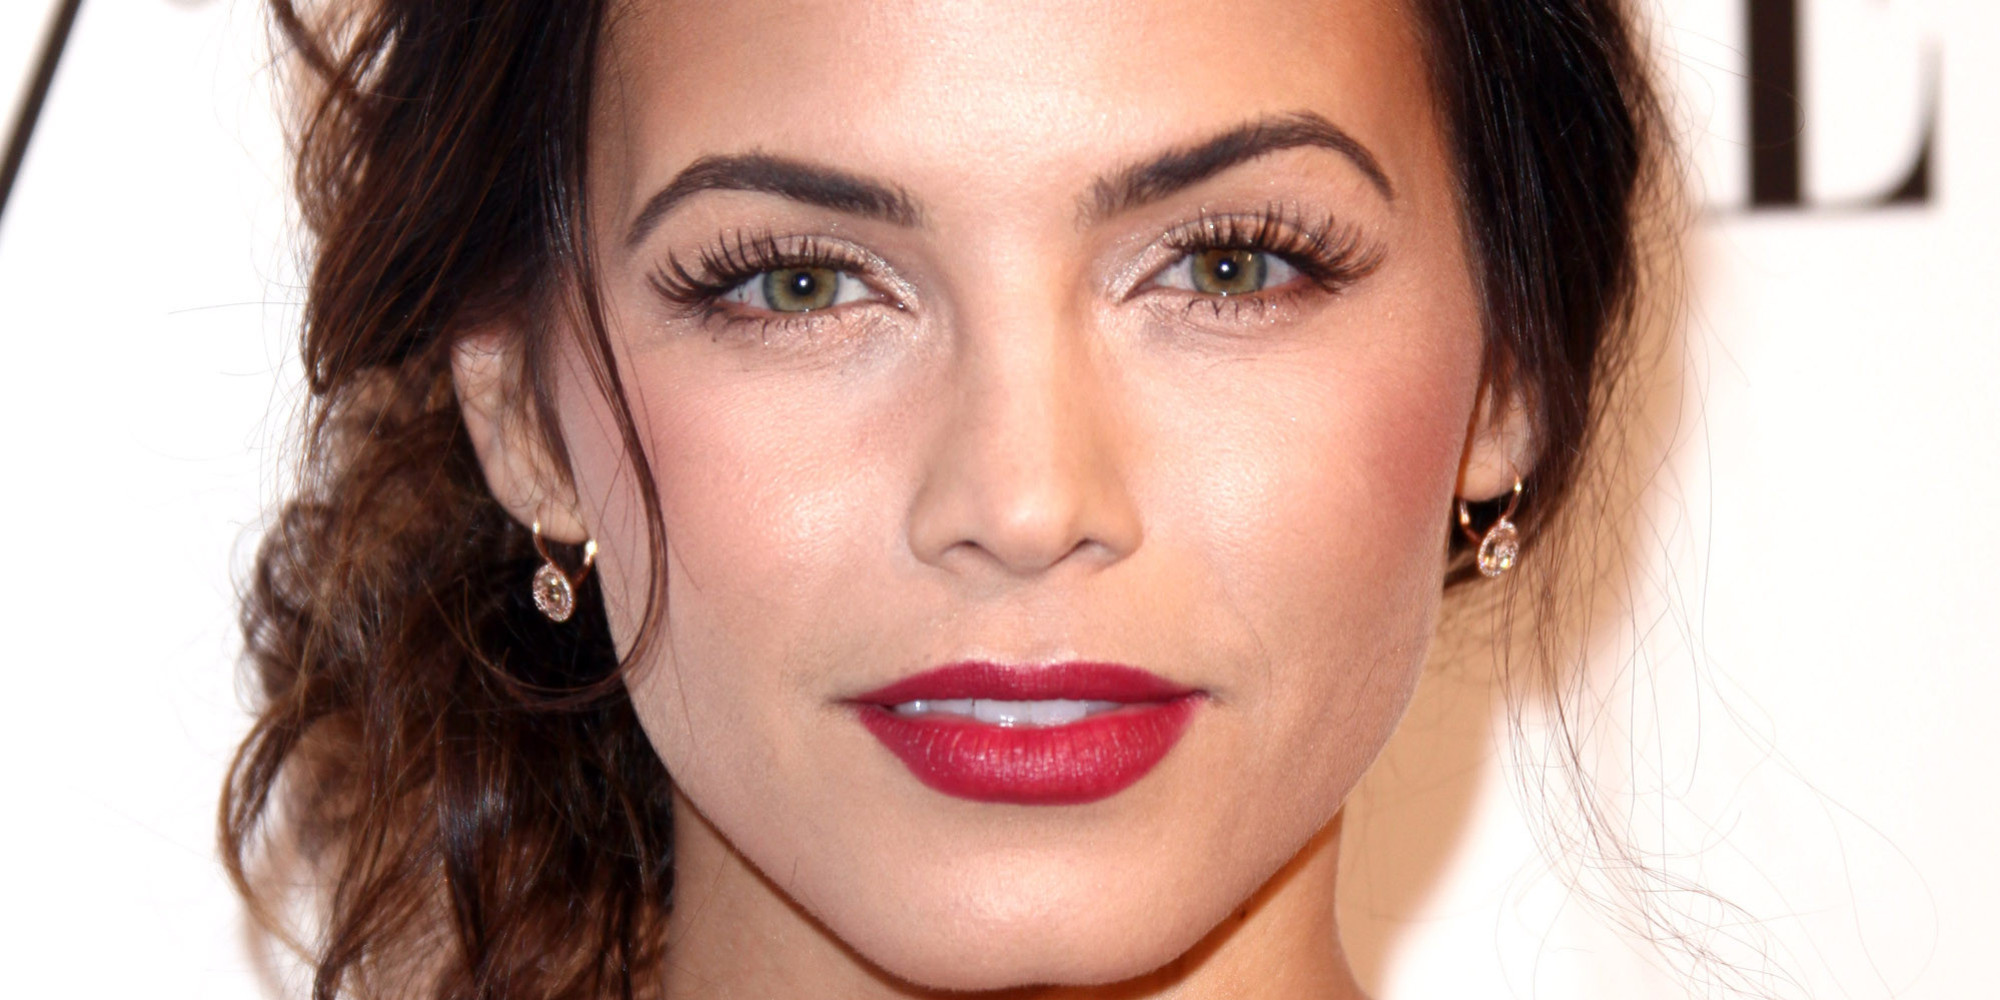 WEST HOLLYWOOD, CA - JANUARY 22: Actress Jenna Dewan-Tatum attends the ELLE Women In Television Celebration held at the Sunset Tower on January 22, 2014 in West Hollywood, California. (Photo by Tommaso Boddi/WireImage)